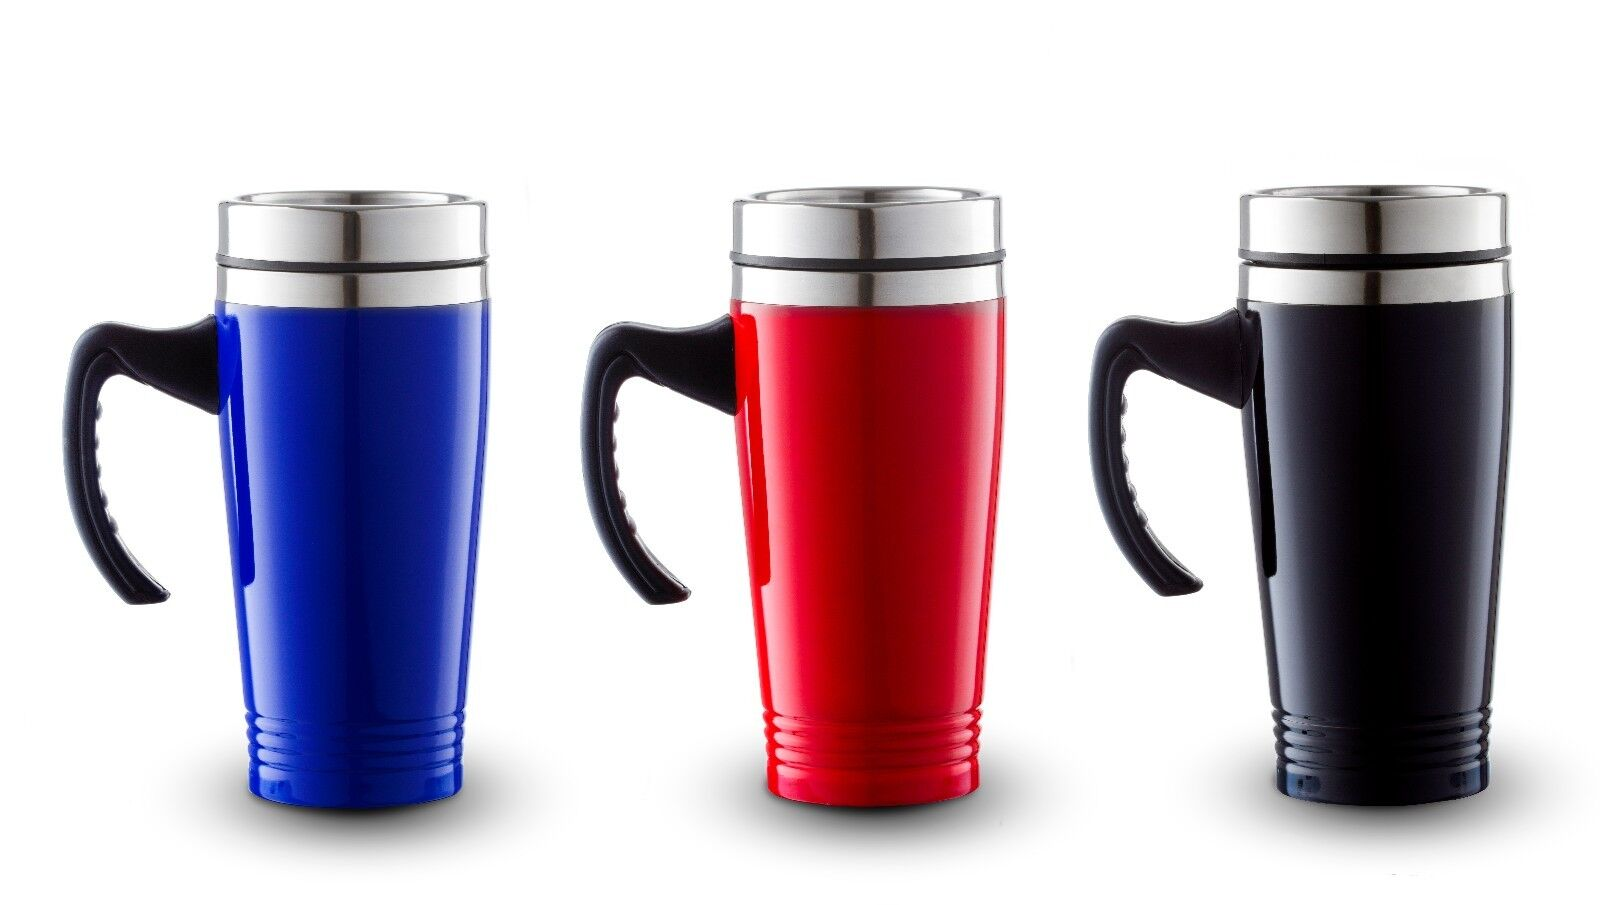 New 16oz stainless steel coffee cup with handle insulated for Mug handle ideas